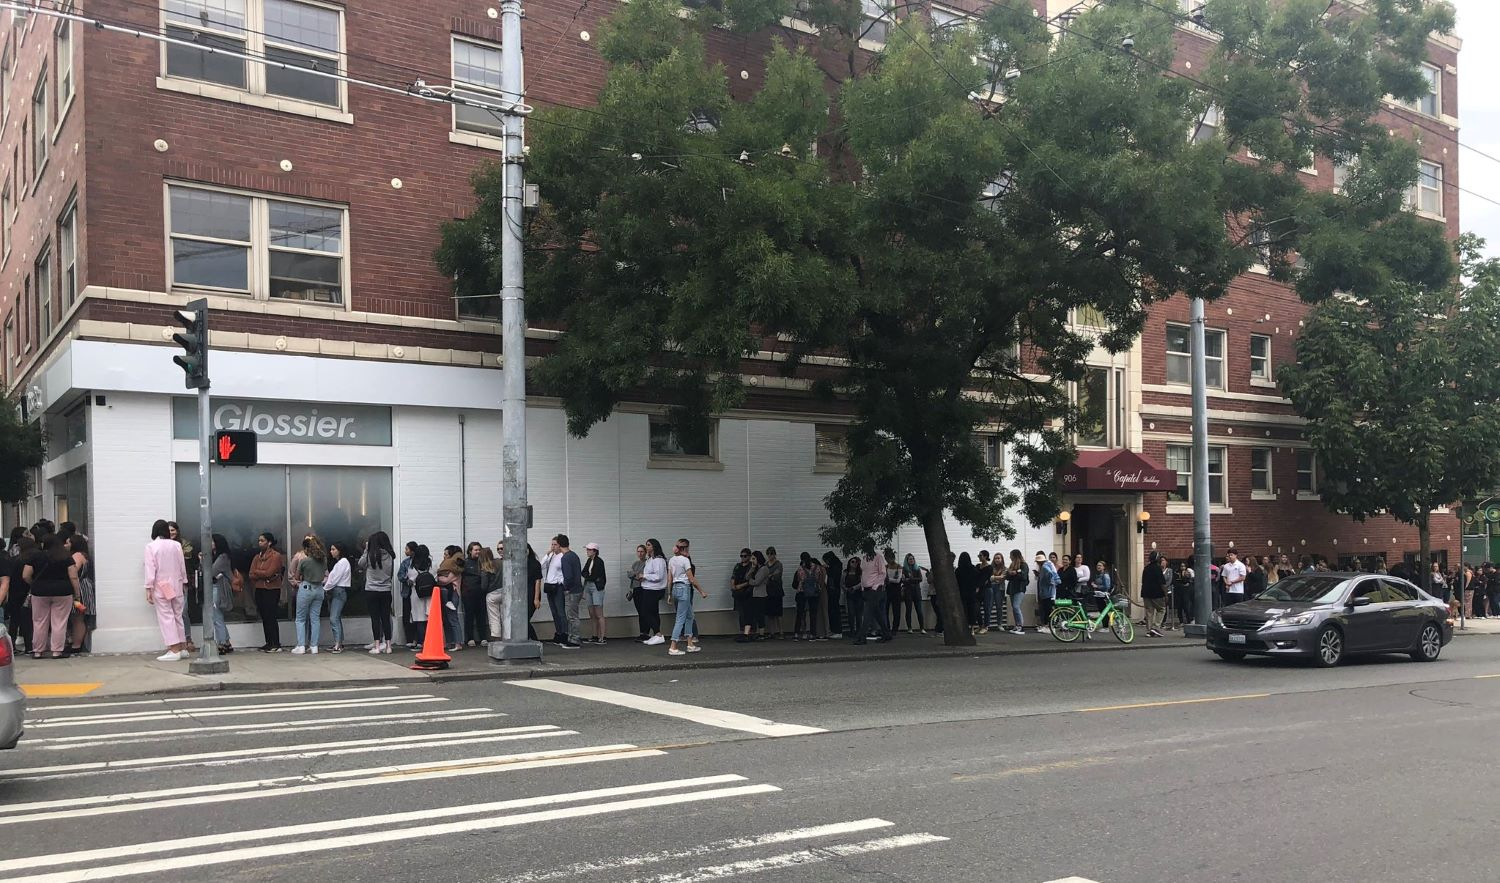 Glossier store with full of people line up